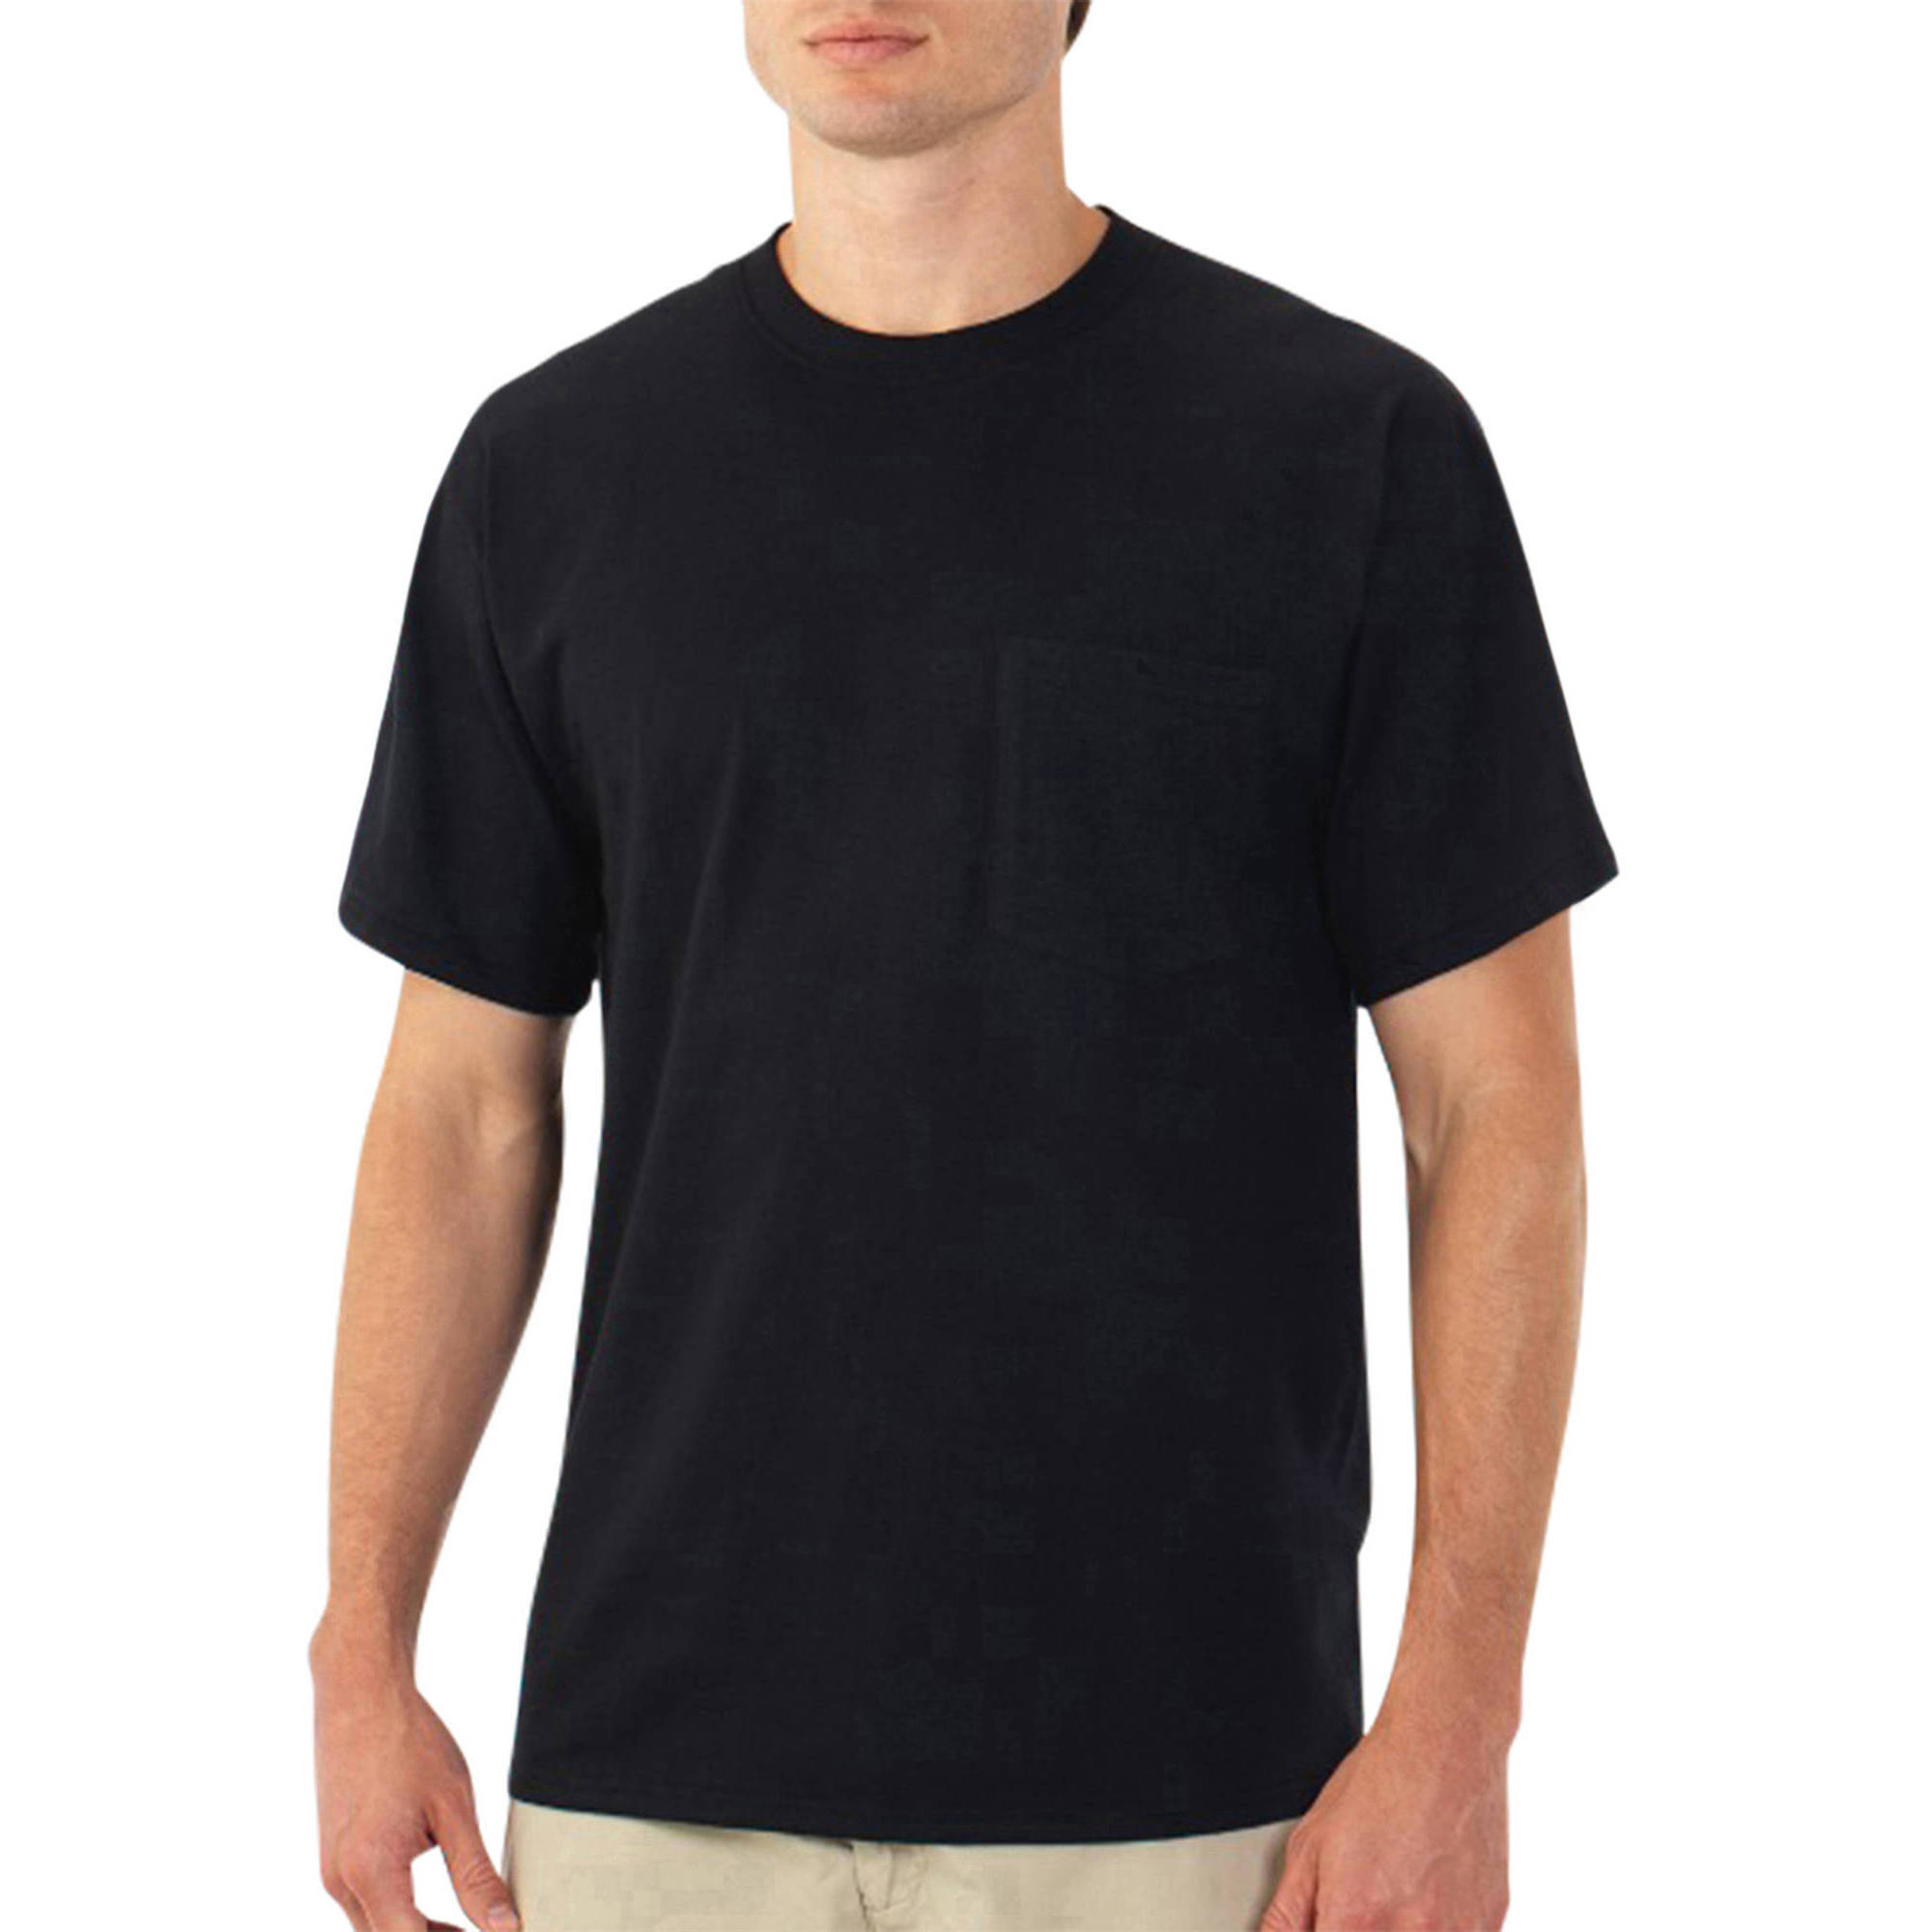 Fruit of the Loom Platinum Eversoft Men's Short Sleeve Crew Pocket T - Shirt, up to Size 4XL